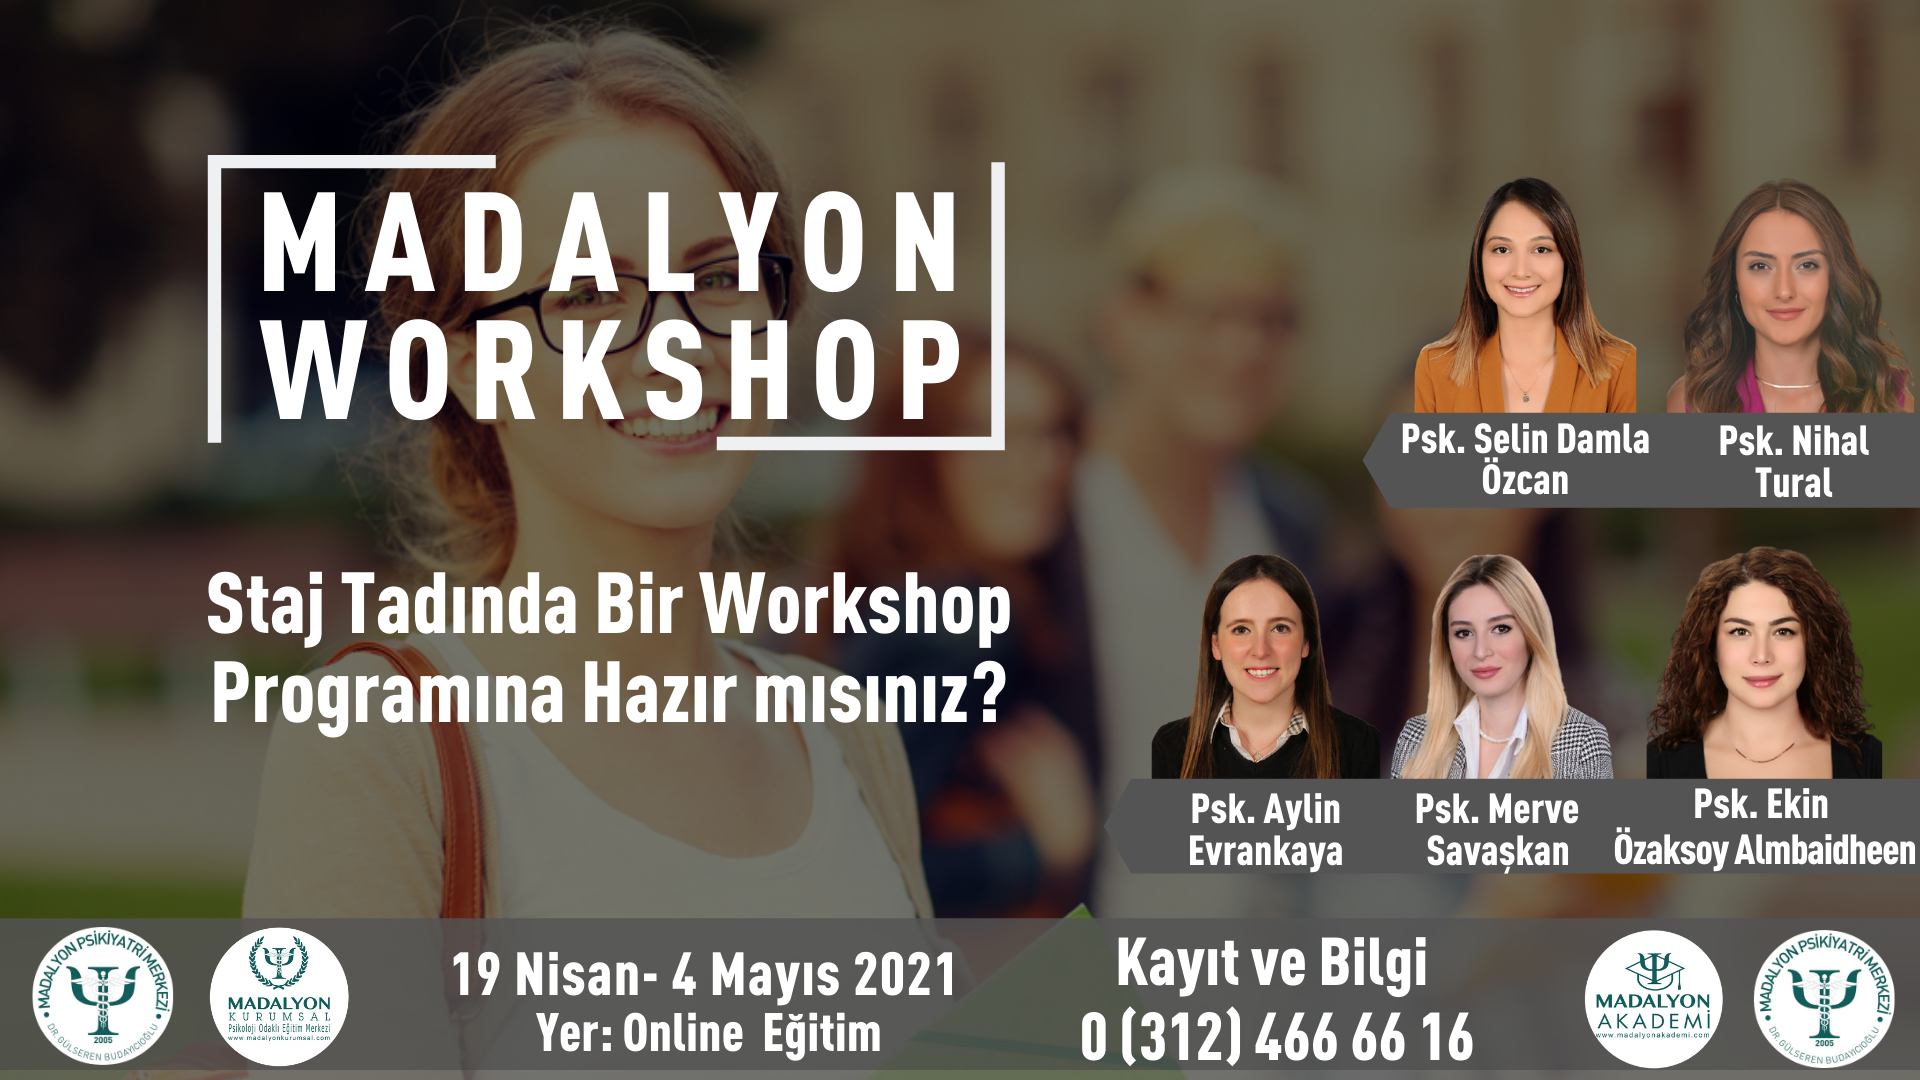 Madalyon Workshop